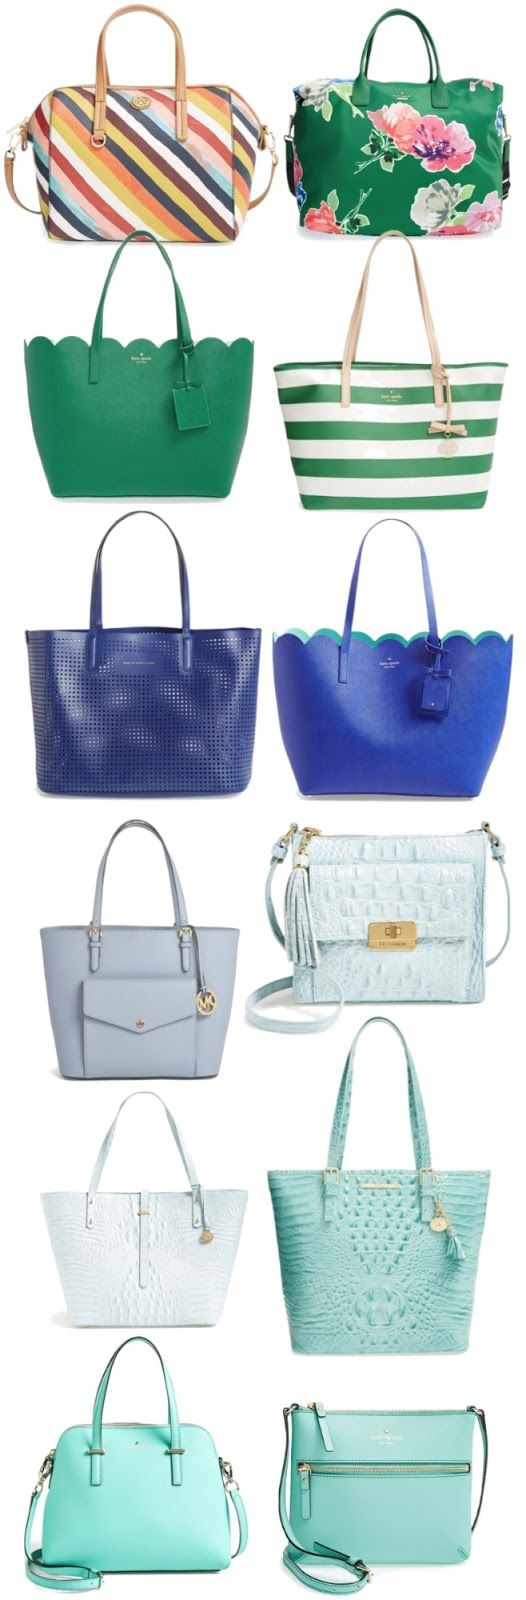 Colorful Spring Handbags - one of each please!